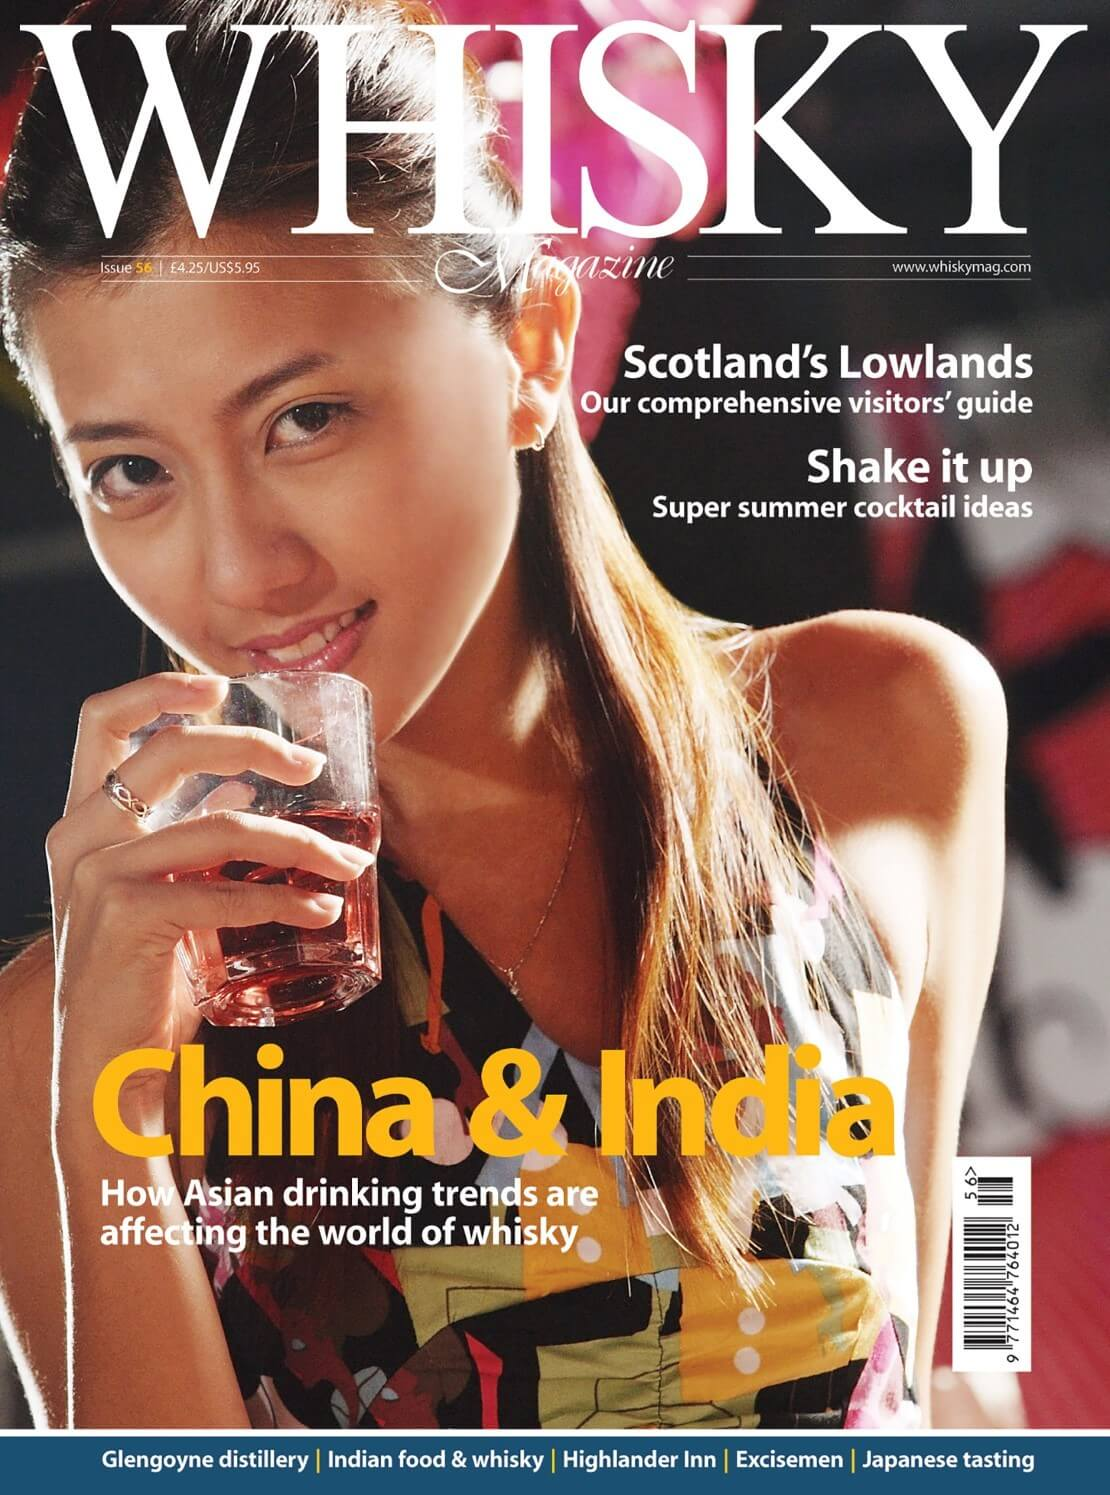 Scotland's Lowlands Shake it up China and India Glengoyne Indian food Highlander Inn Japanese Tastings